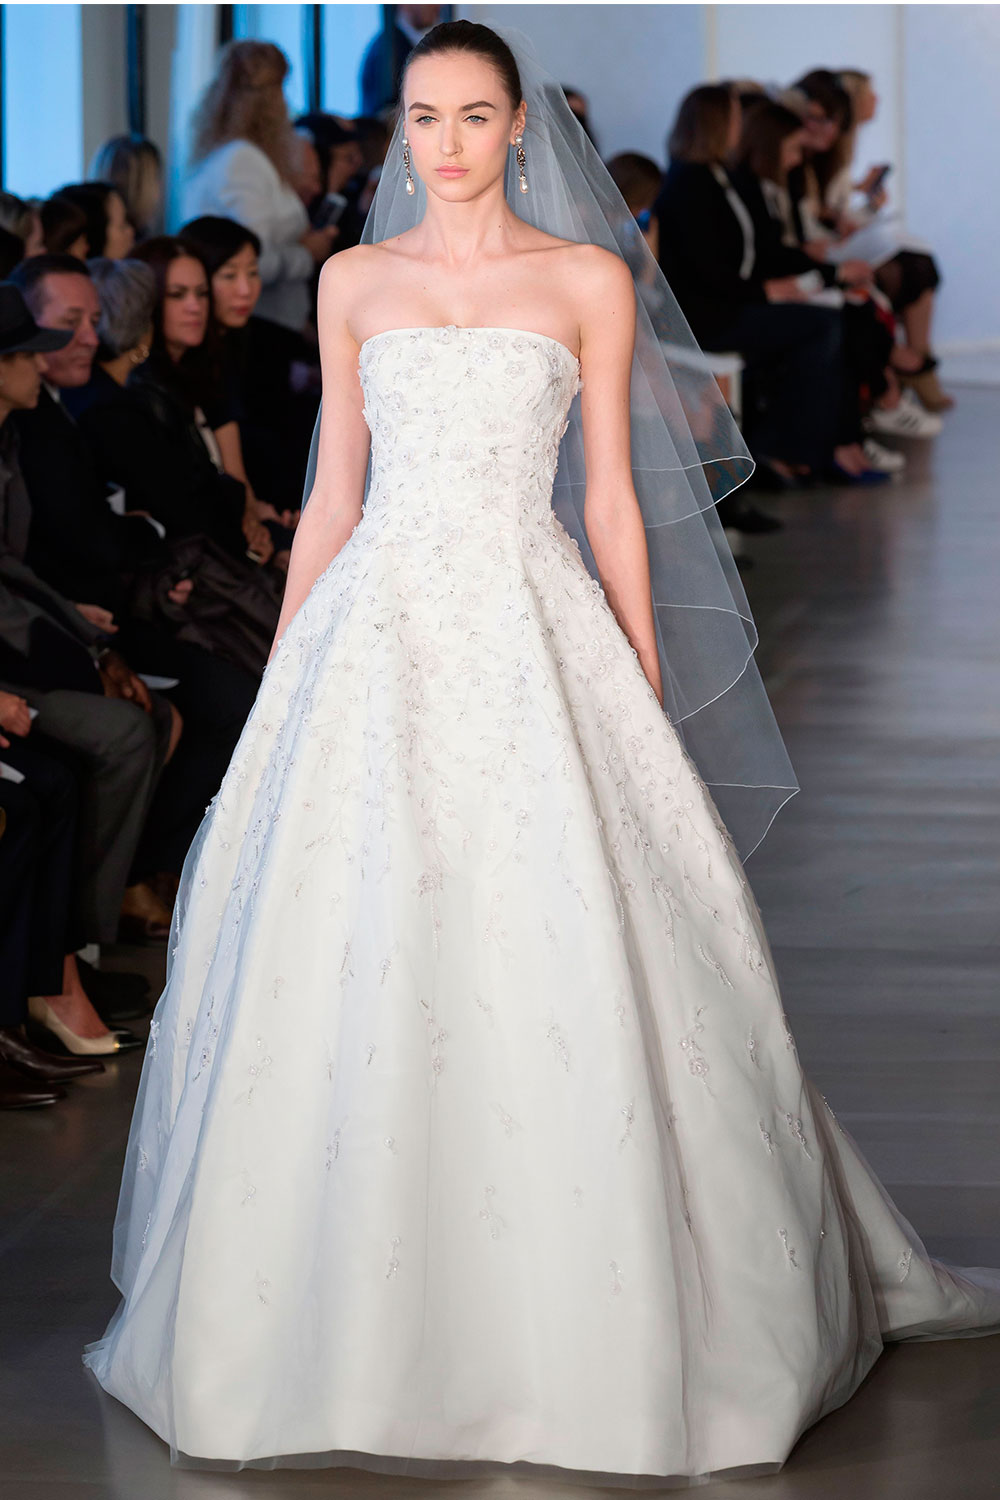 Wedding Dresses from bespoke to highstreet how to find the perfect dress